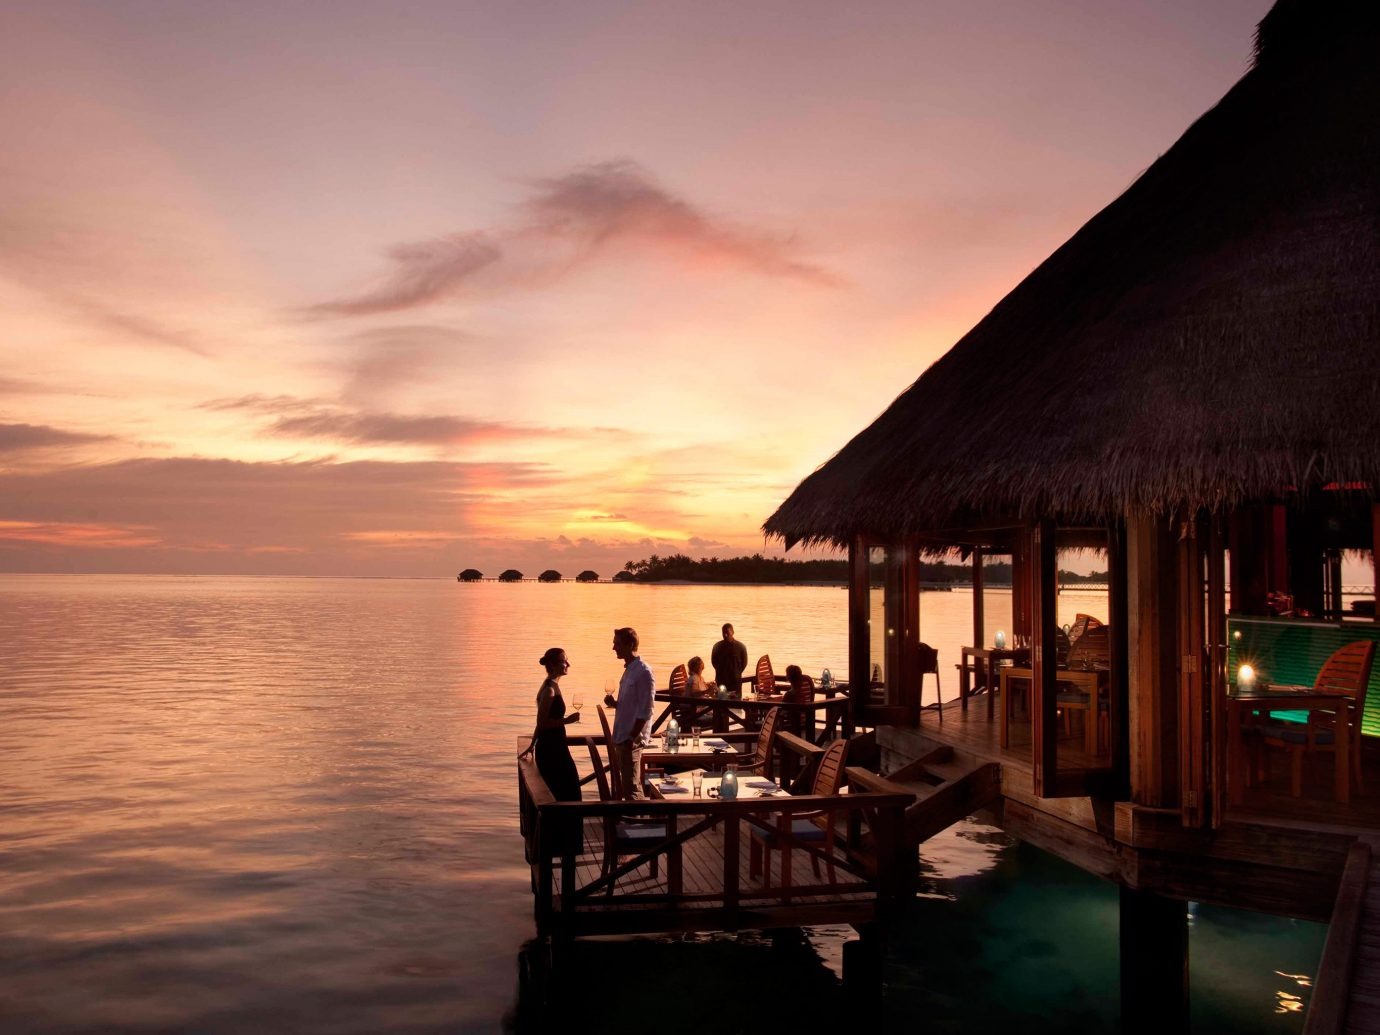 Bar Dining Drink Eat Elegant Entertainment Hotels Natural wonders Ocean Scenic views Trip Ideas Wildlife sky water outdoor Sunset Sea evening dusk morning reflection dawn bay sunrise shore